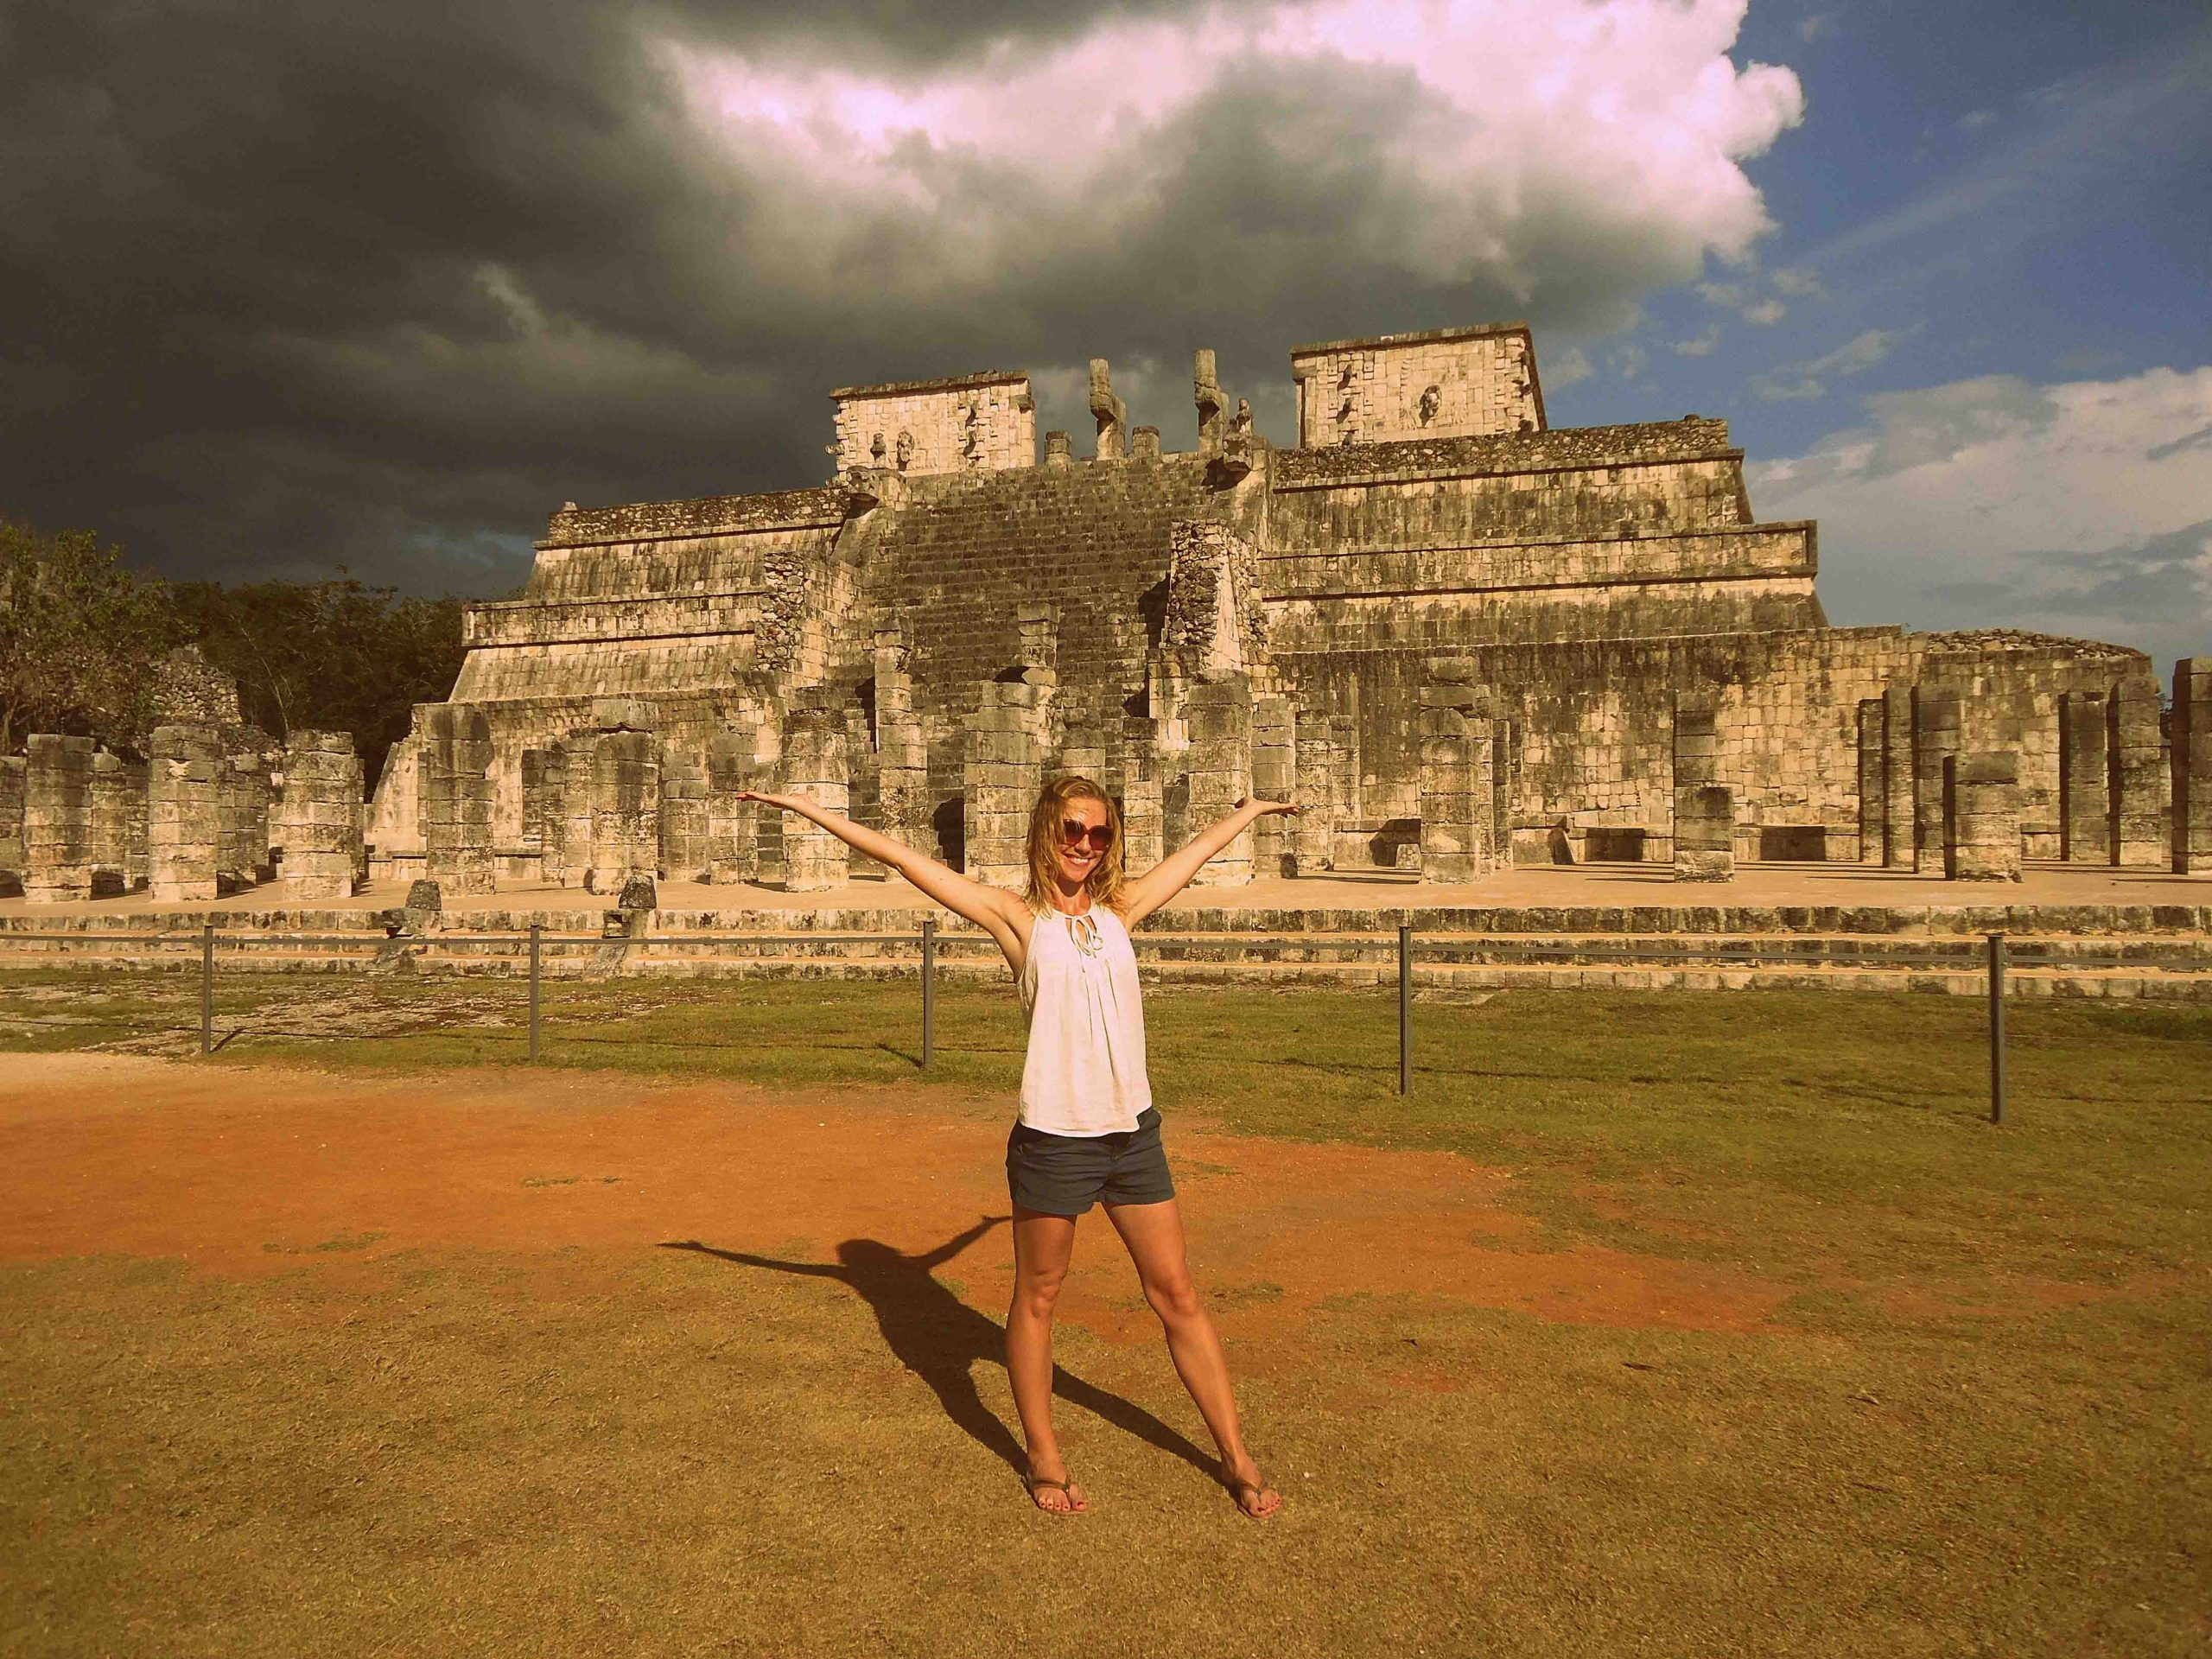 Chichen Itza, best known as it is one of the Seven Wonders of the Modern World